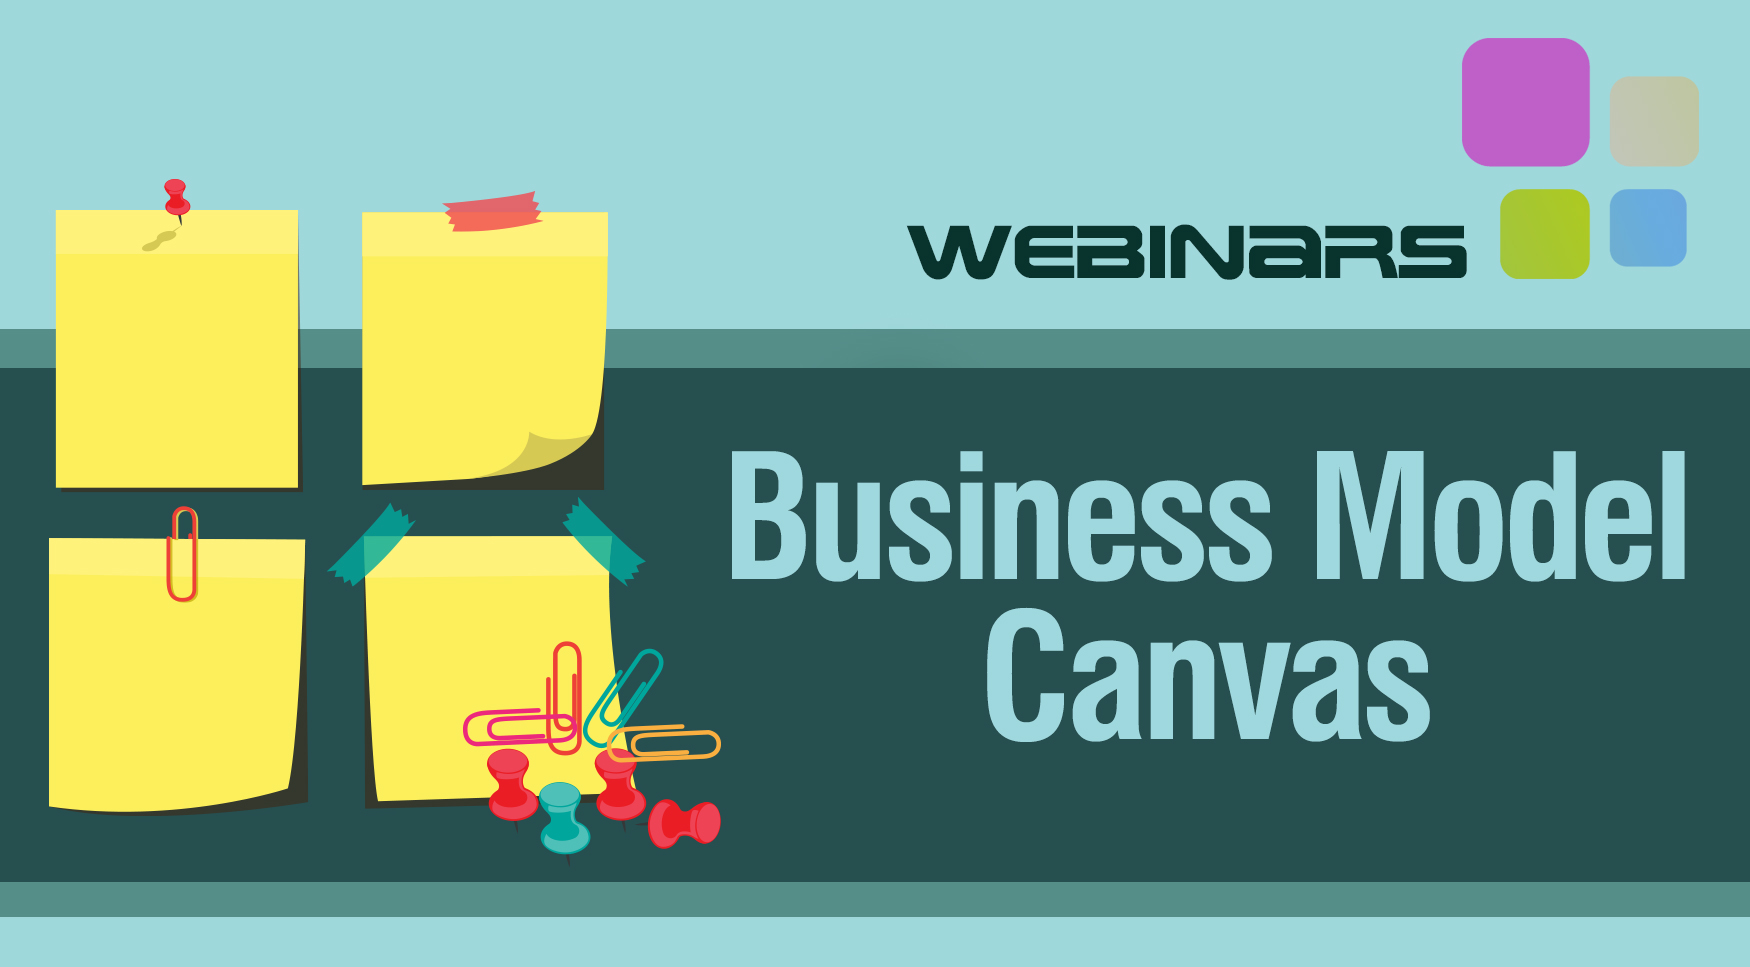 webinars_Business Model Canvas